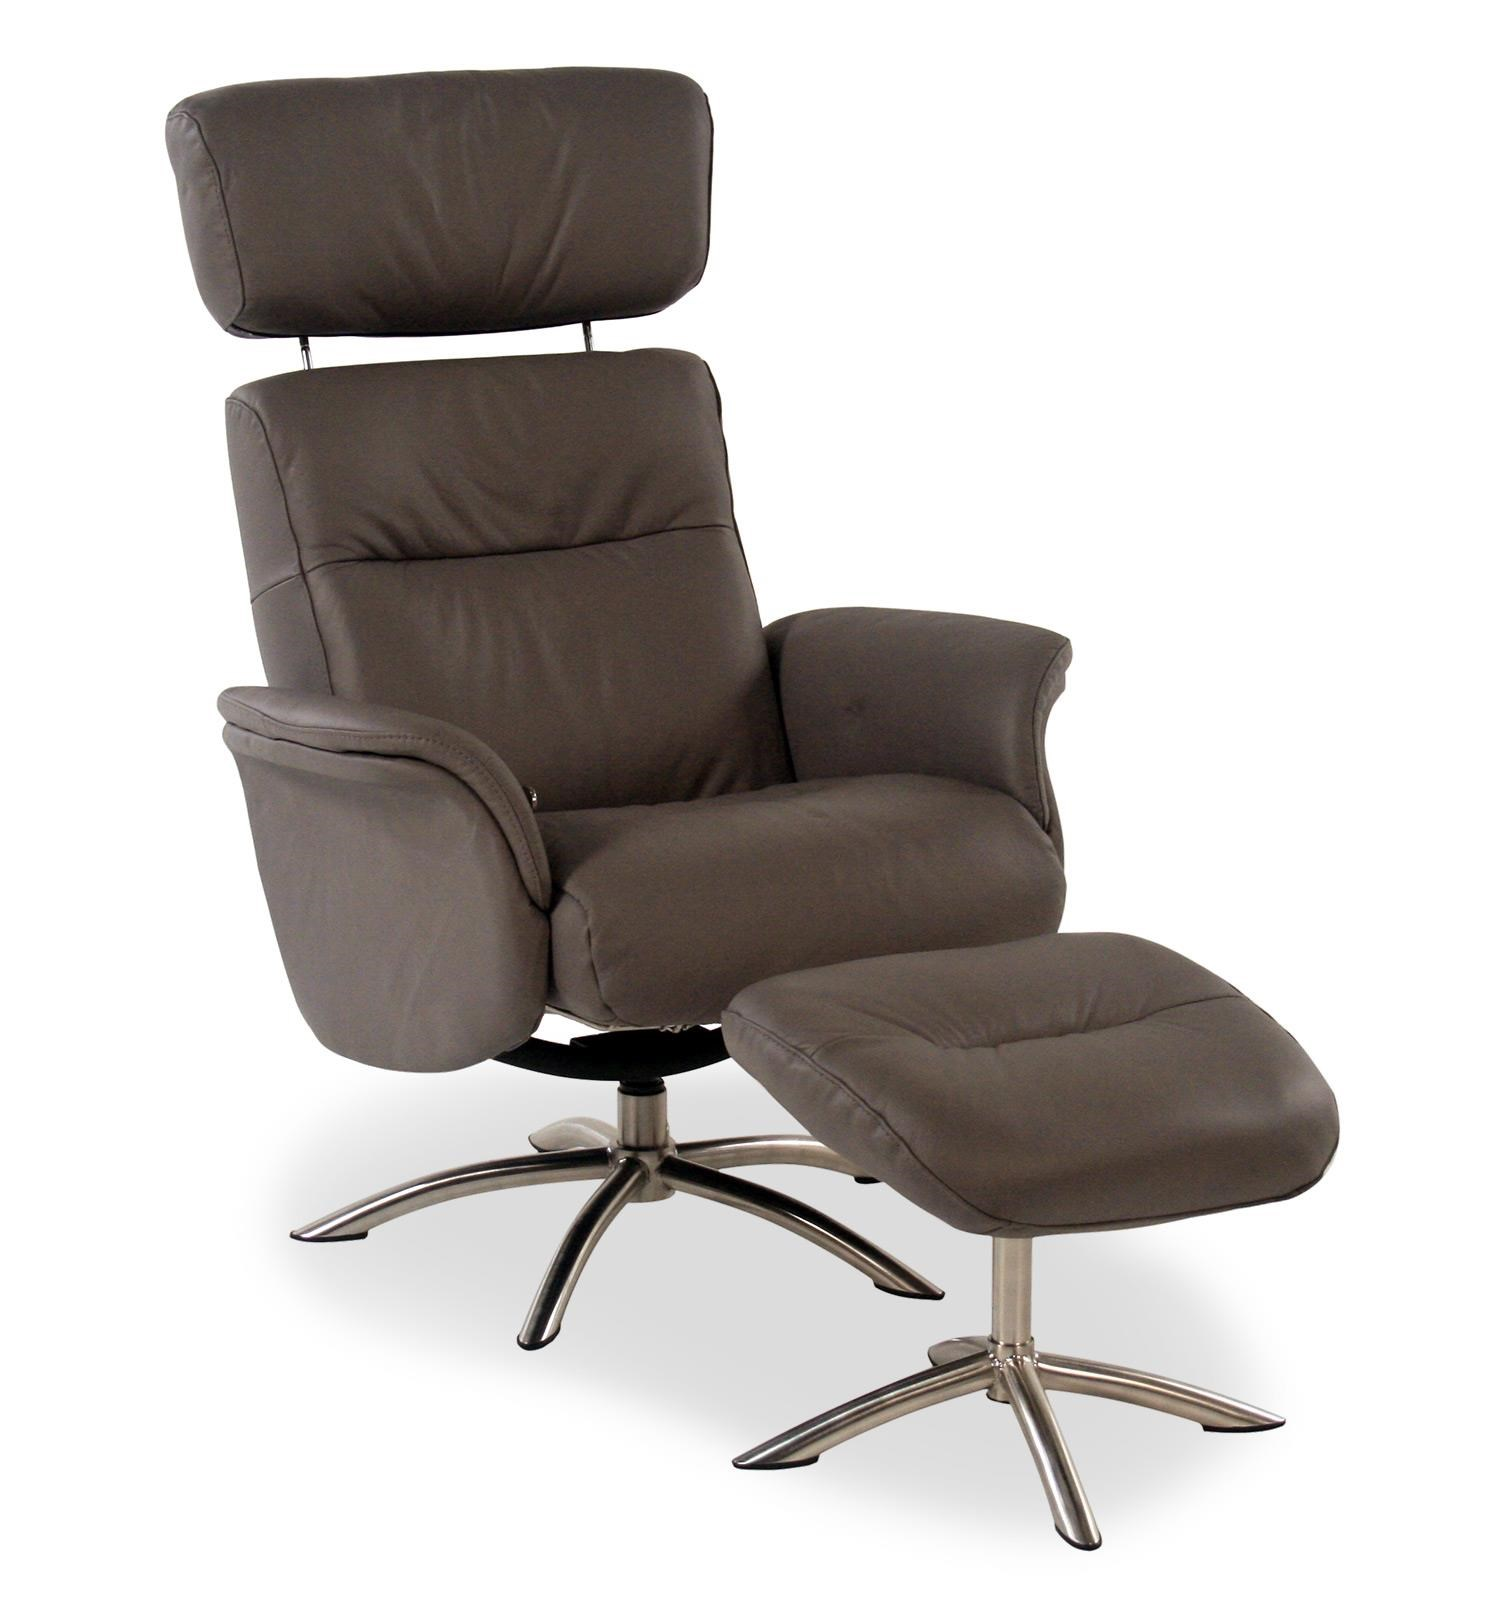 office recliners. palliser quantum leather reclining chair and ottoman item number 5000402tulsastorm office recliners